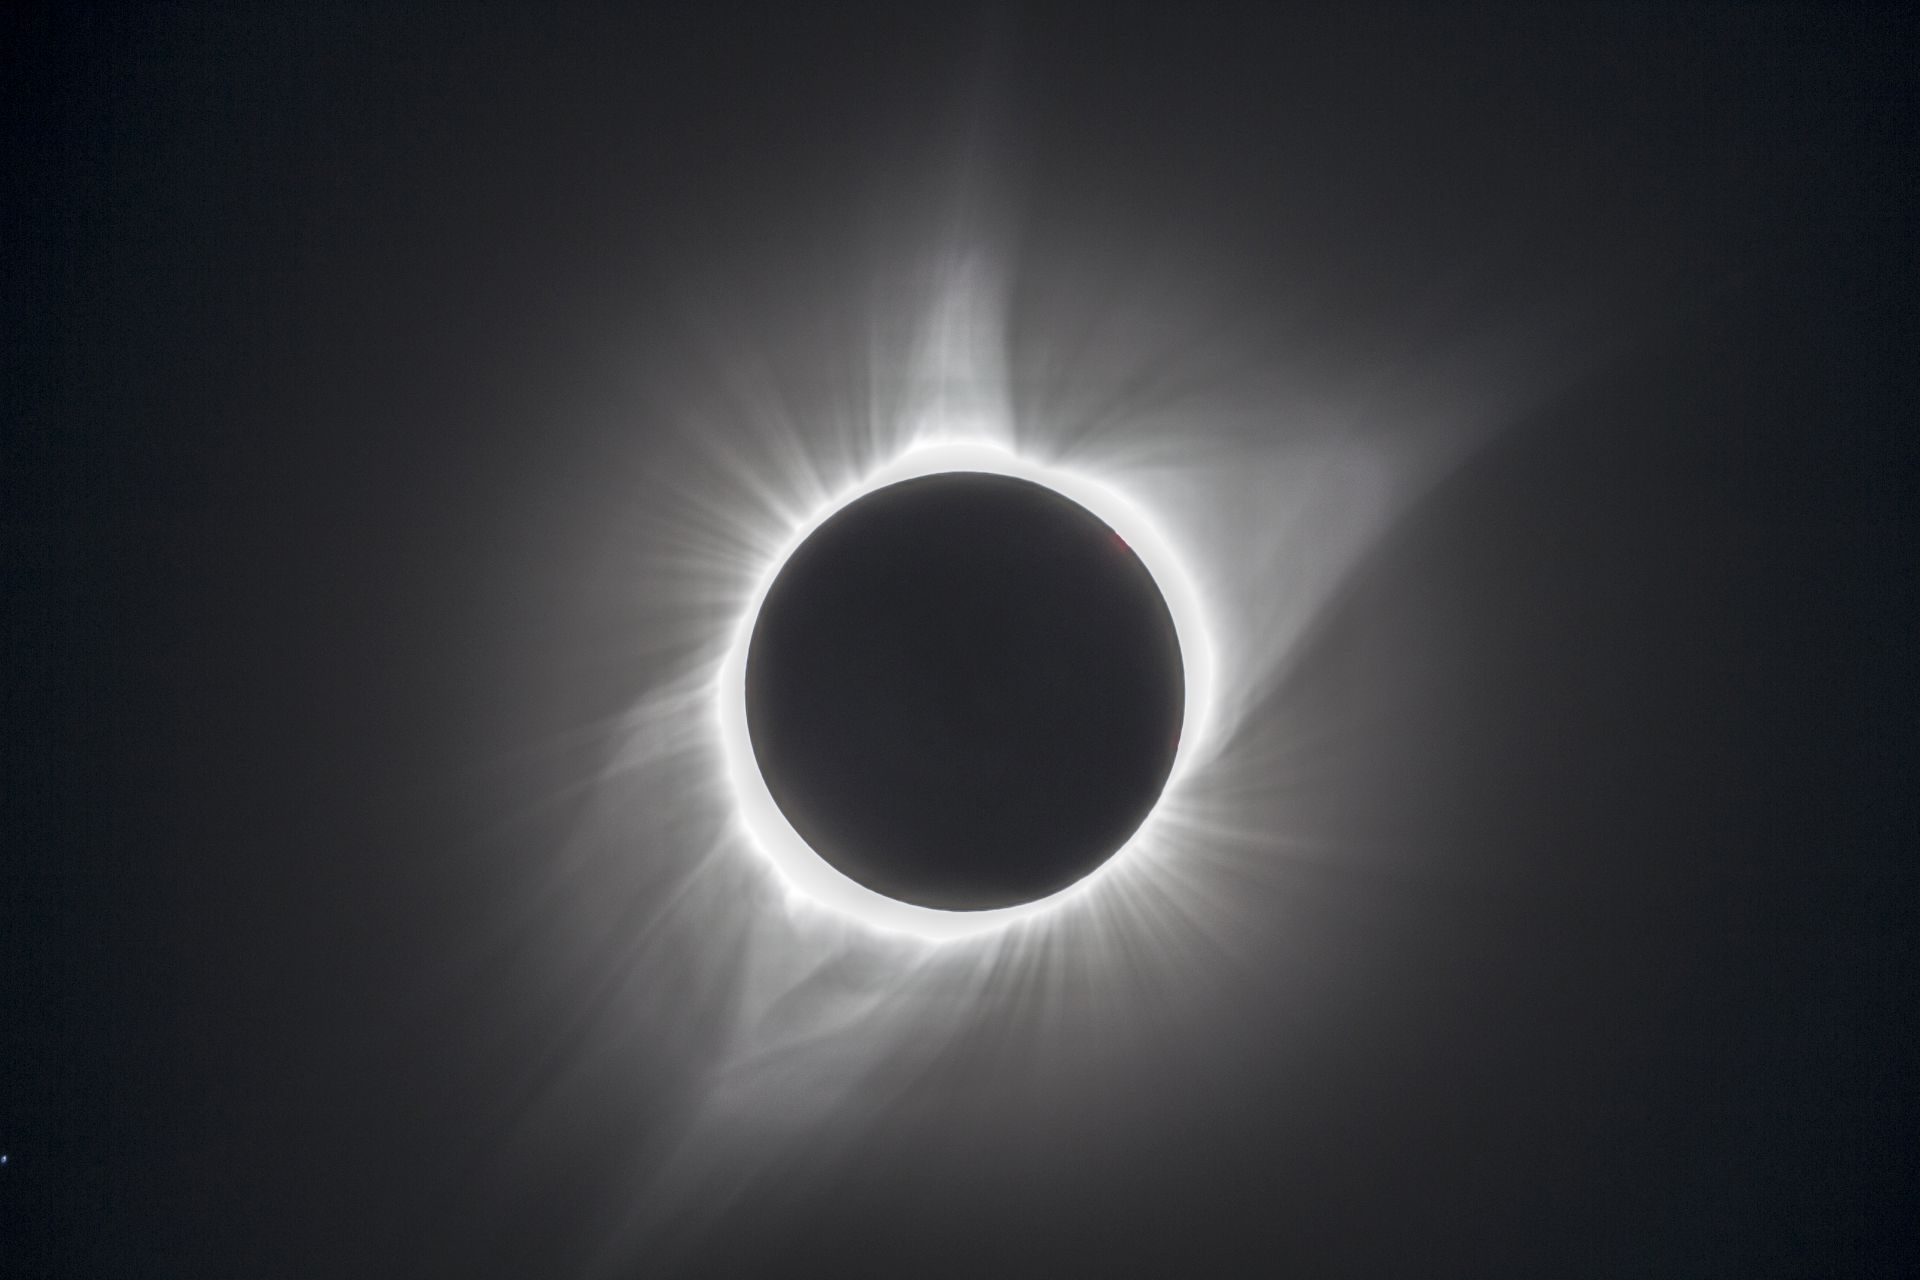 Total_Eclipse.jpg